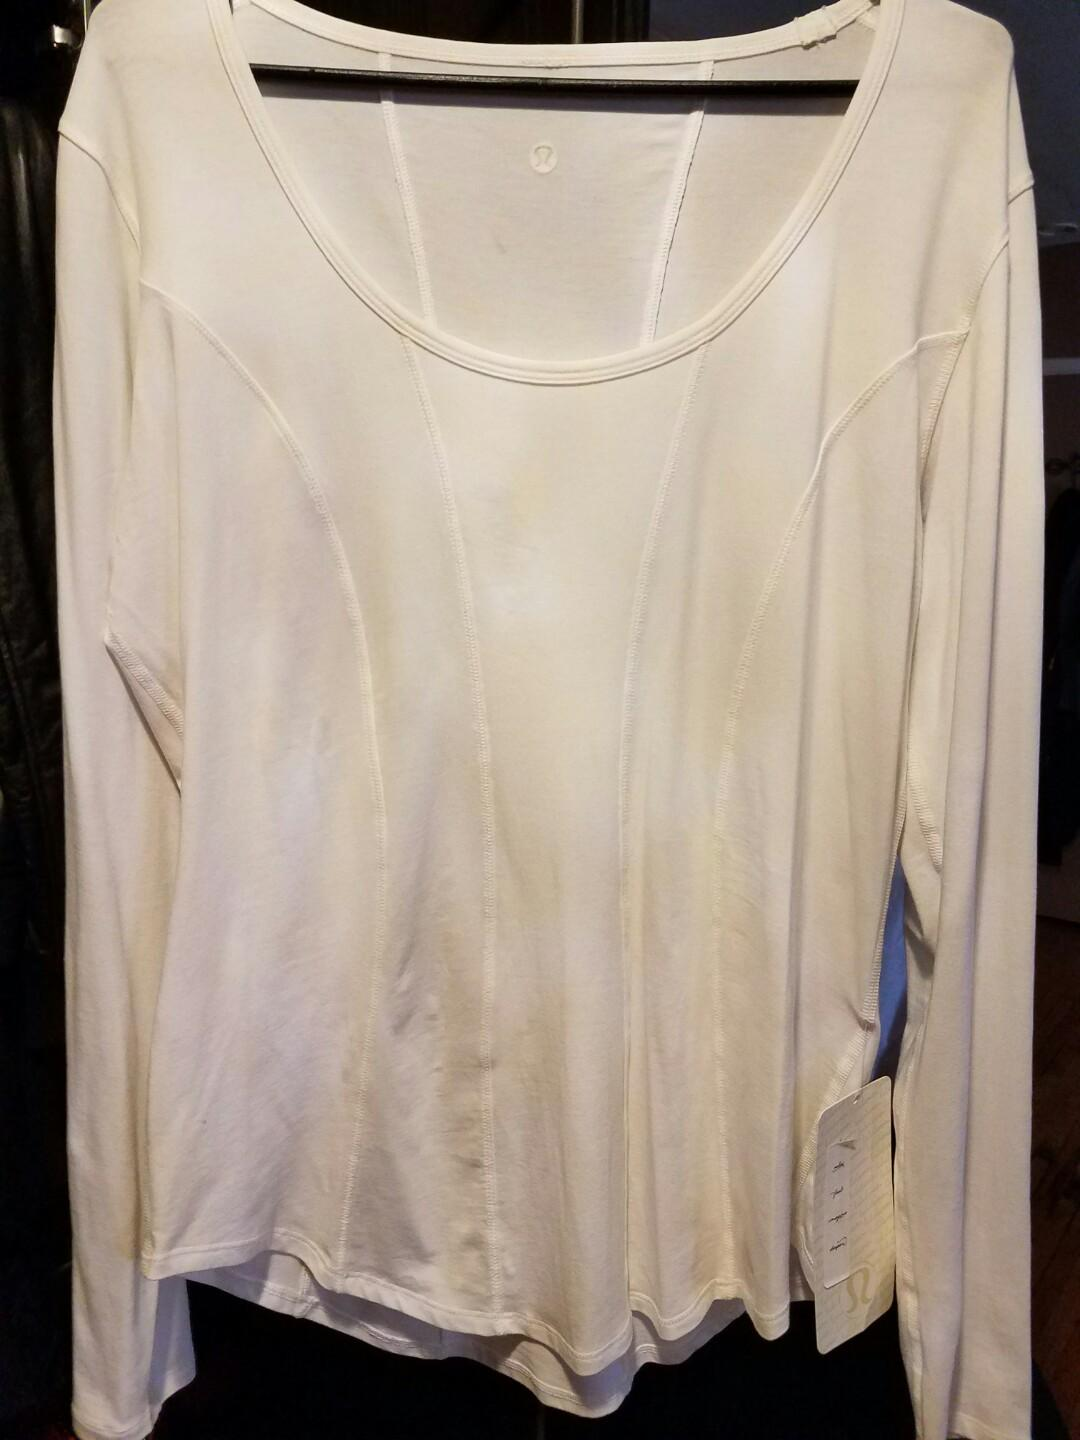 Ladies white Lululemon top size xl brand new with tags